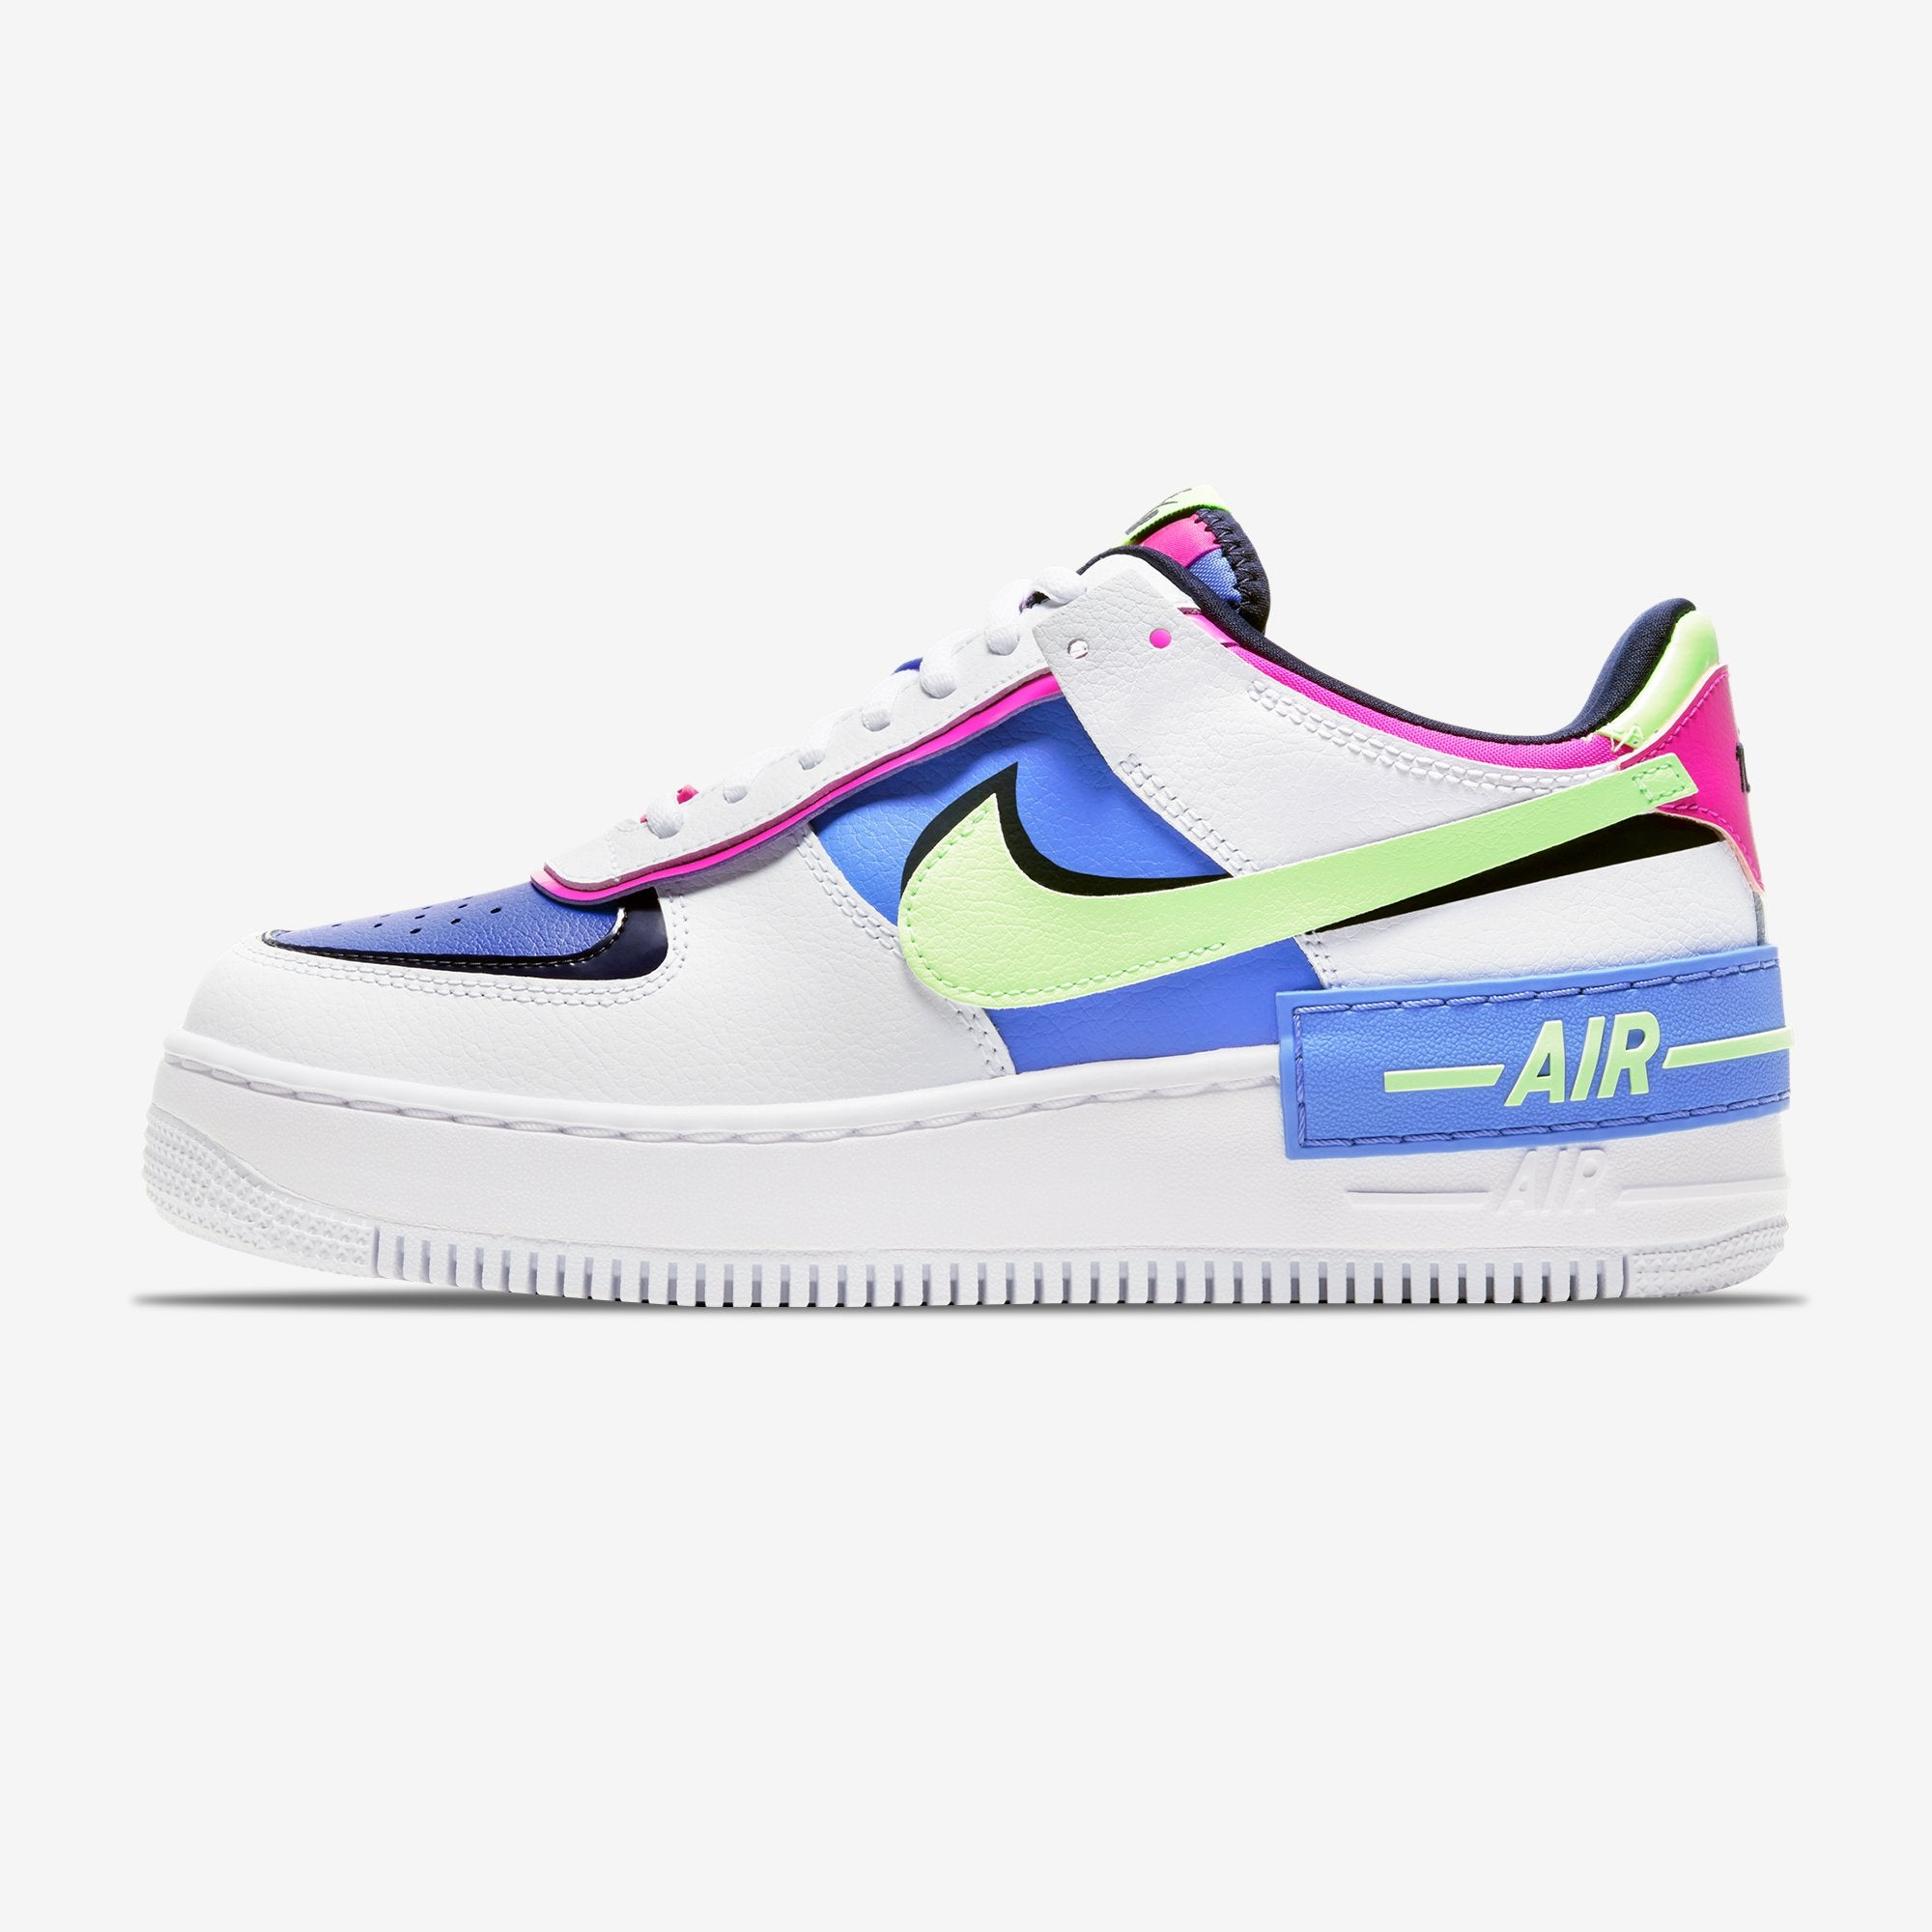 Nike Air Force 1 Shadow Sapphire Cj1641 100 Women Sneakers Sneakerbaas Com White Originally released in '82 under the name 'air force' and designed by one of nike's top designers, bruce kilgore, the sneaker was initially. sneakerbaas